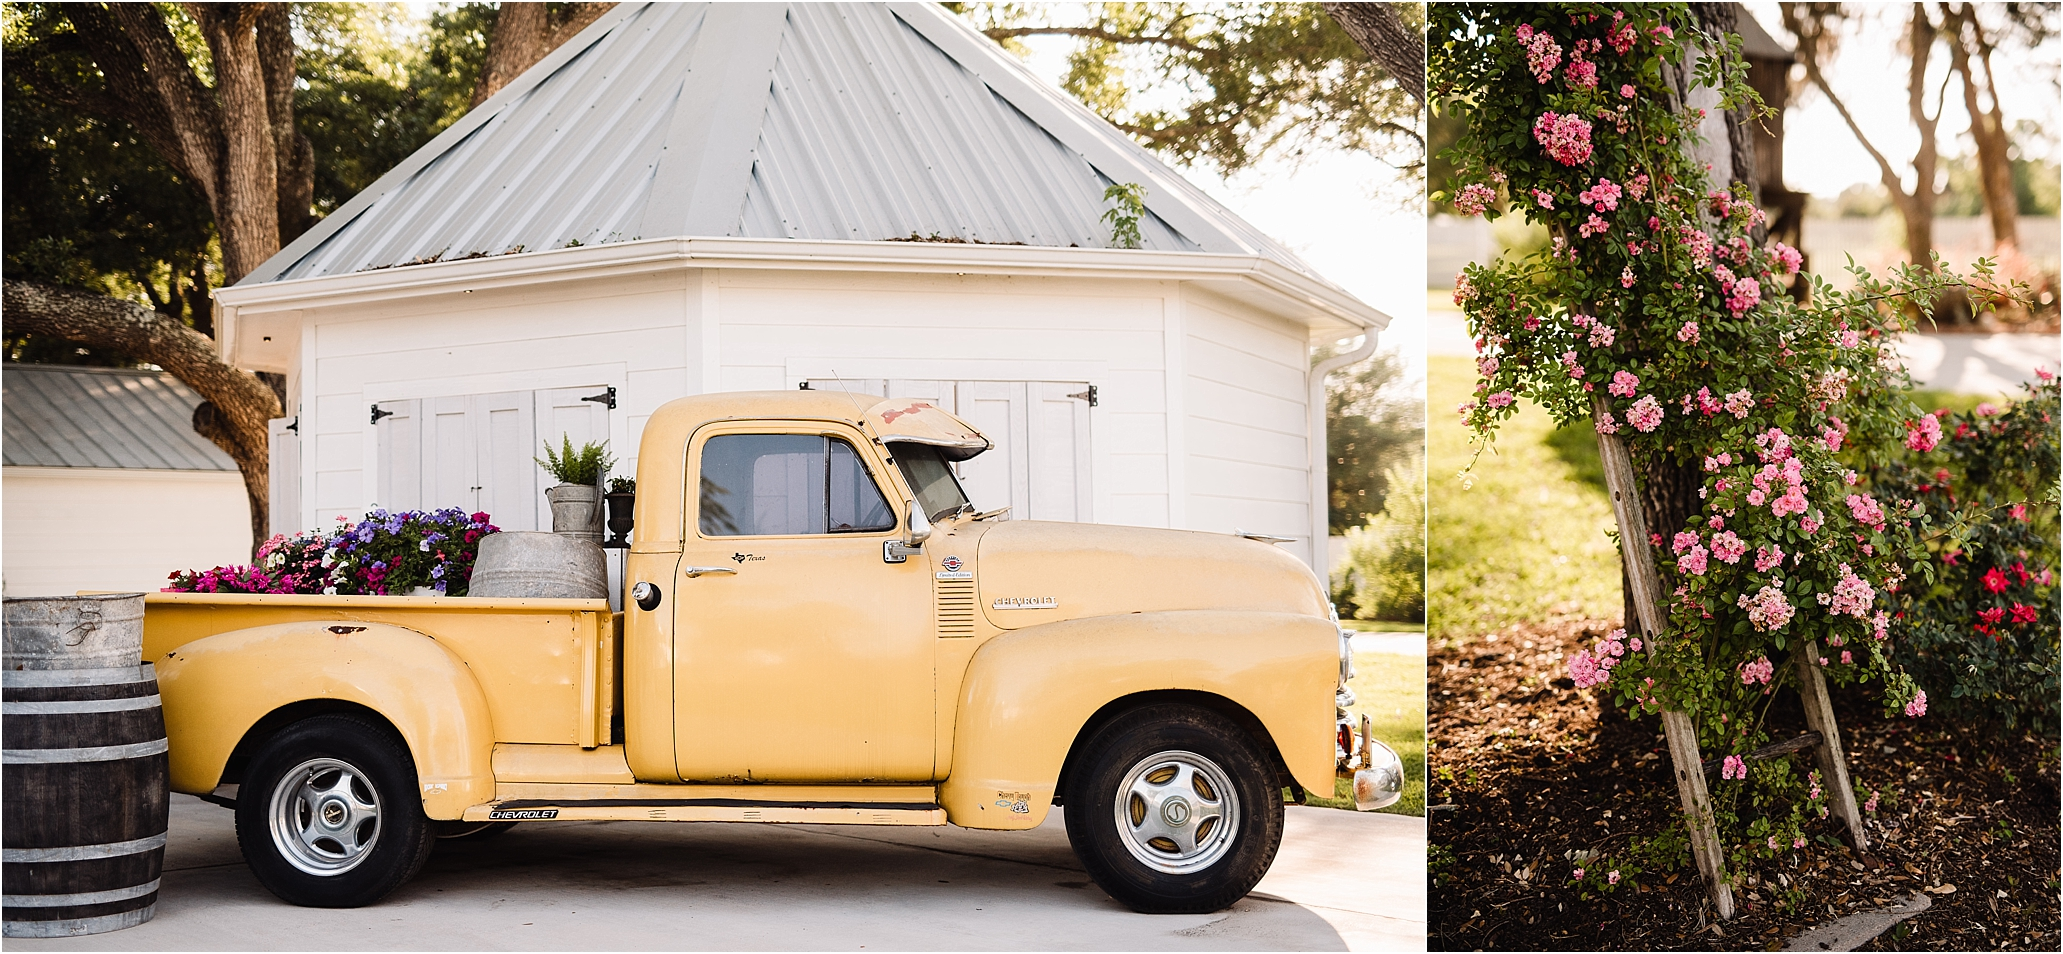 PattisonHouse_TexasWeddingPhotographer_CarlyCrockett&MattBrownWedding_0121.jpg